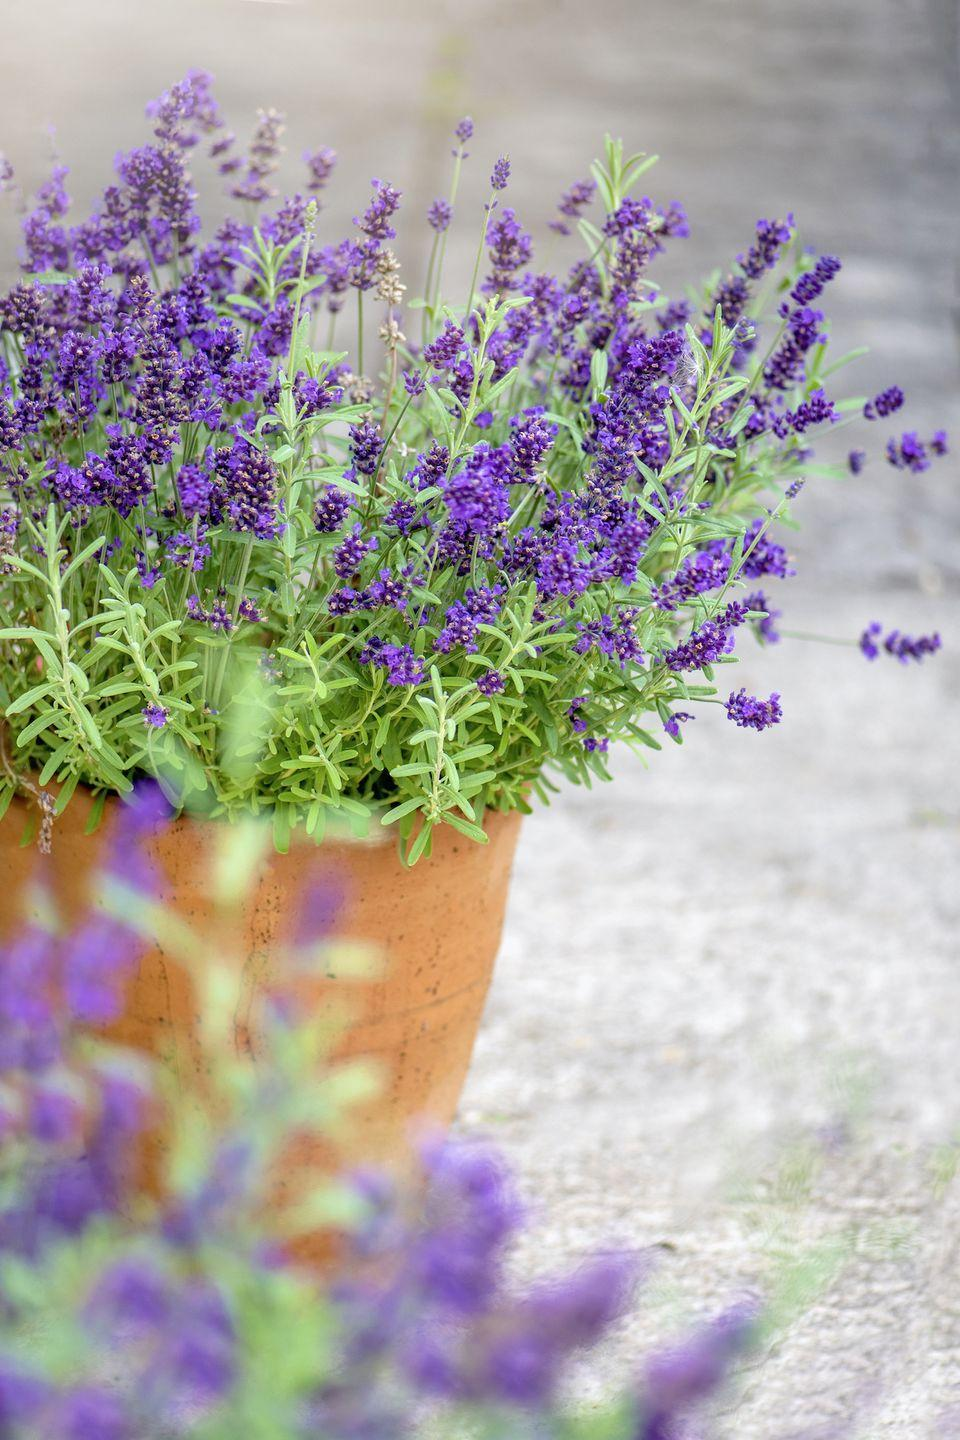 """<p>Lavender might be used to promote calmness, but did you know it can stop spiders crawling into the home? Simply take a cutting from your lavender bush outside, tie it into small bunch, and hang in each room. Why not give this a go during spider season...</p><p><a class=""""link rapid-noclick-resp"""" href=""""https://www.primrose.co.uk/-p-137218.html"""" rel=""""nofollow noopener"""" target=""""_blank"""" data-ylk=""""slk:BUY NOW"""">BUY NOW</a></p>"""